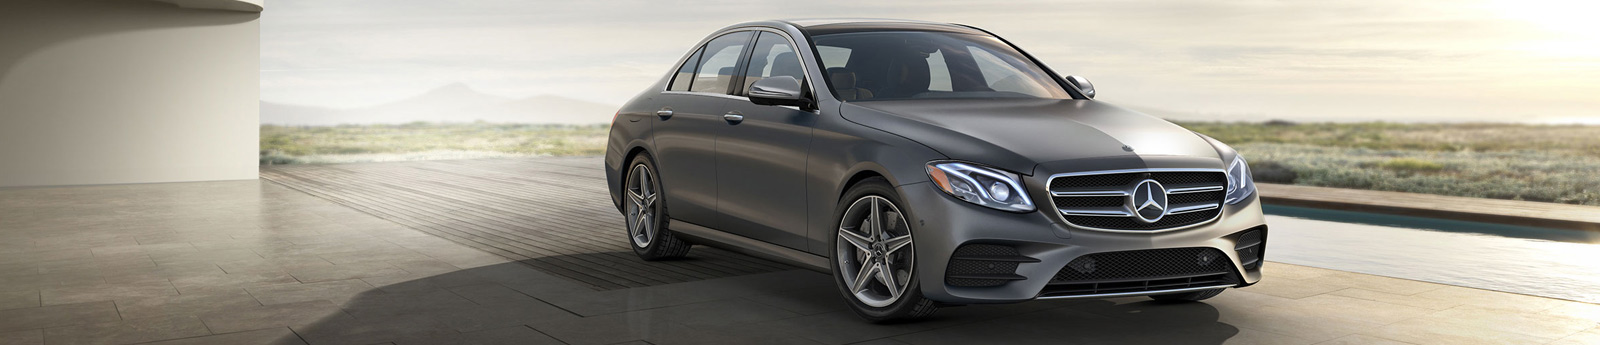 Mercedes-Benz E-Class Sedan